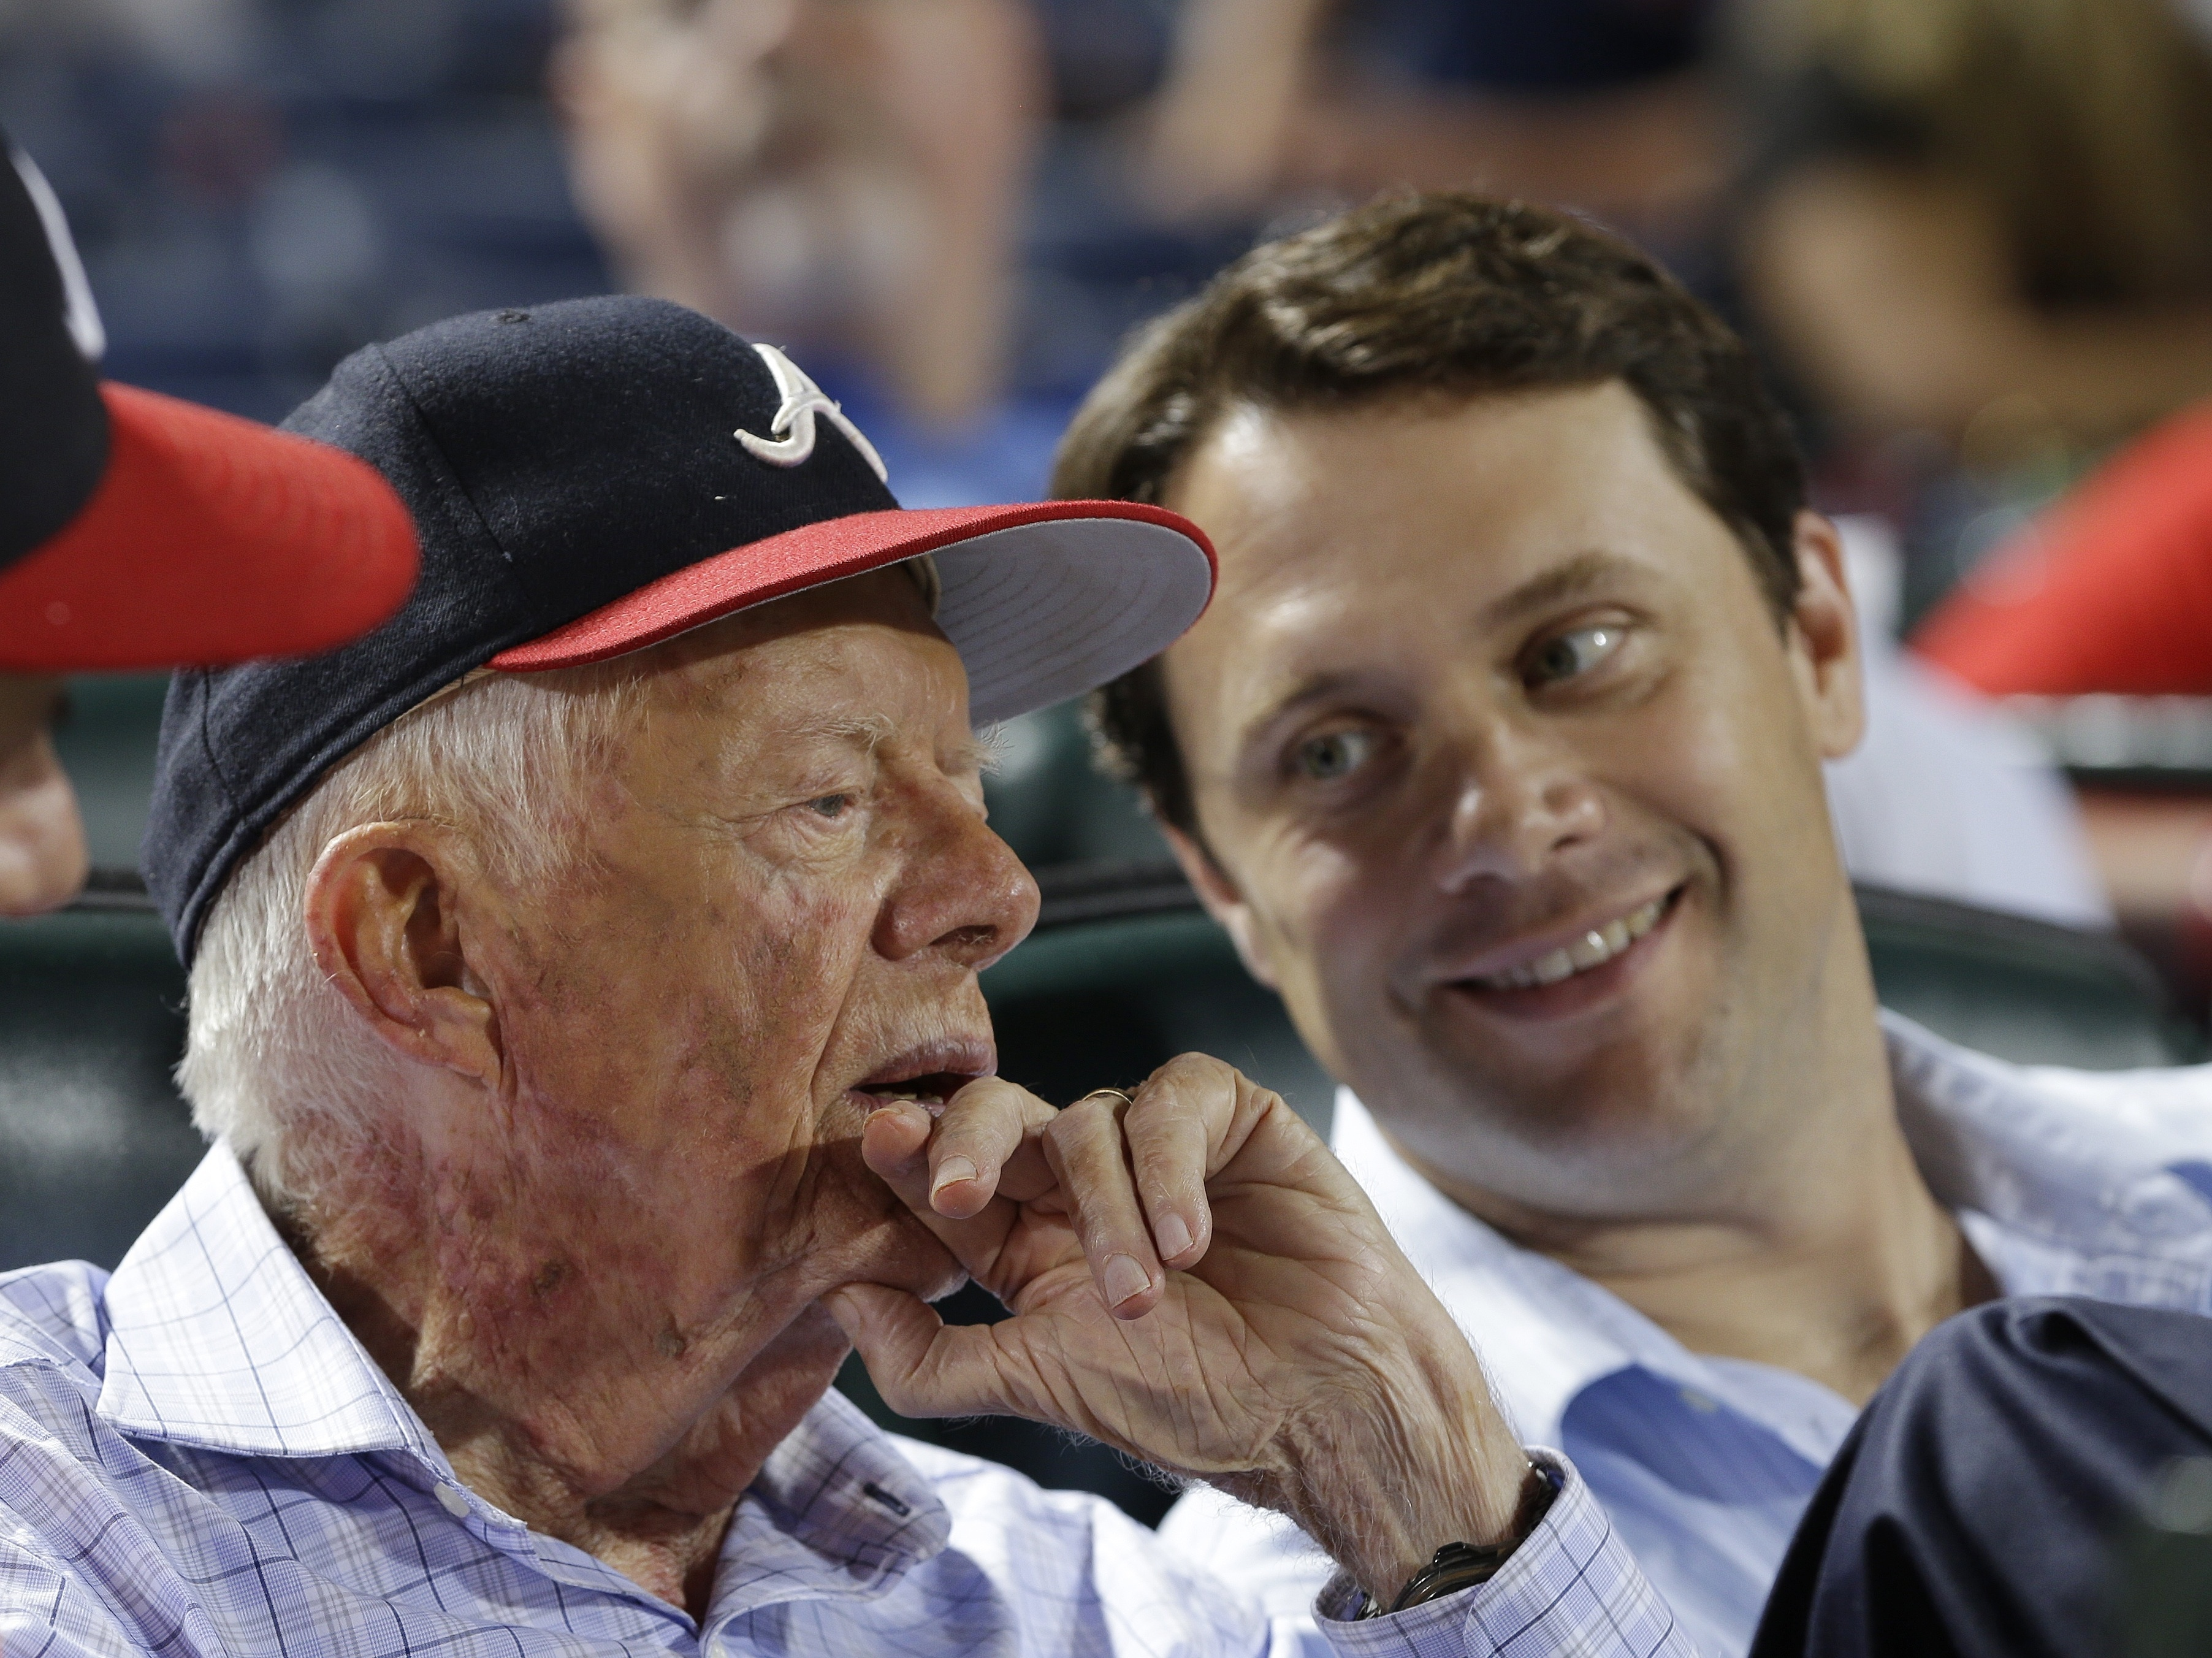 All In The Family Jimmy Carter S Grandson Runs For Governor It S All Politics Npr